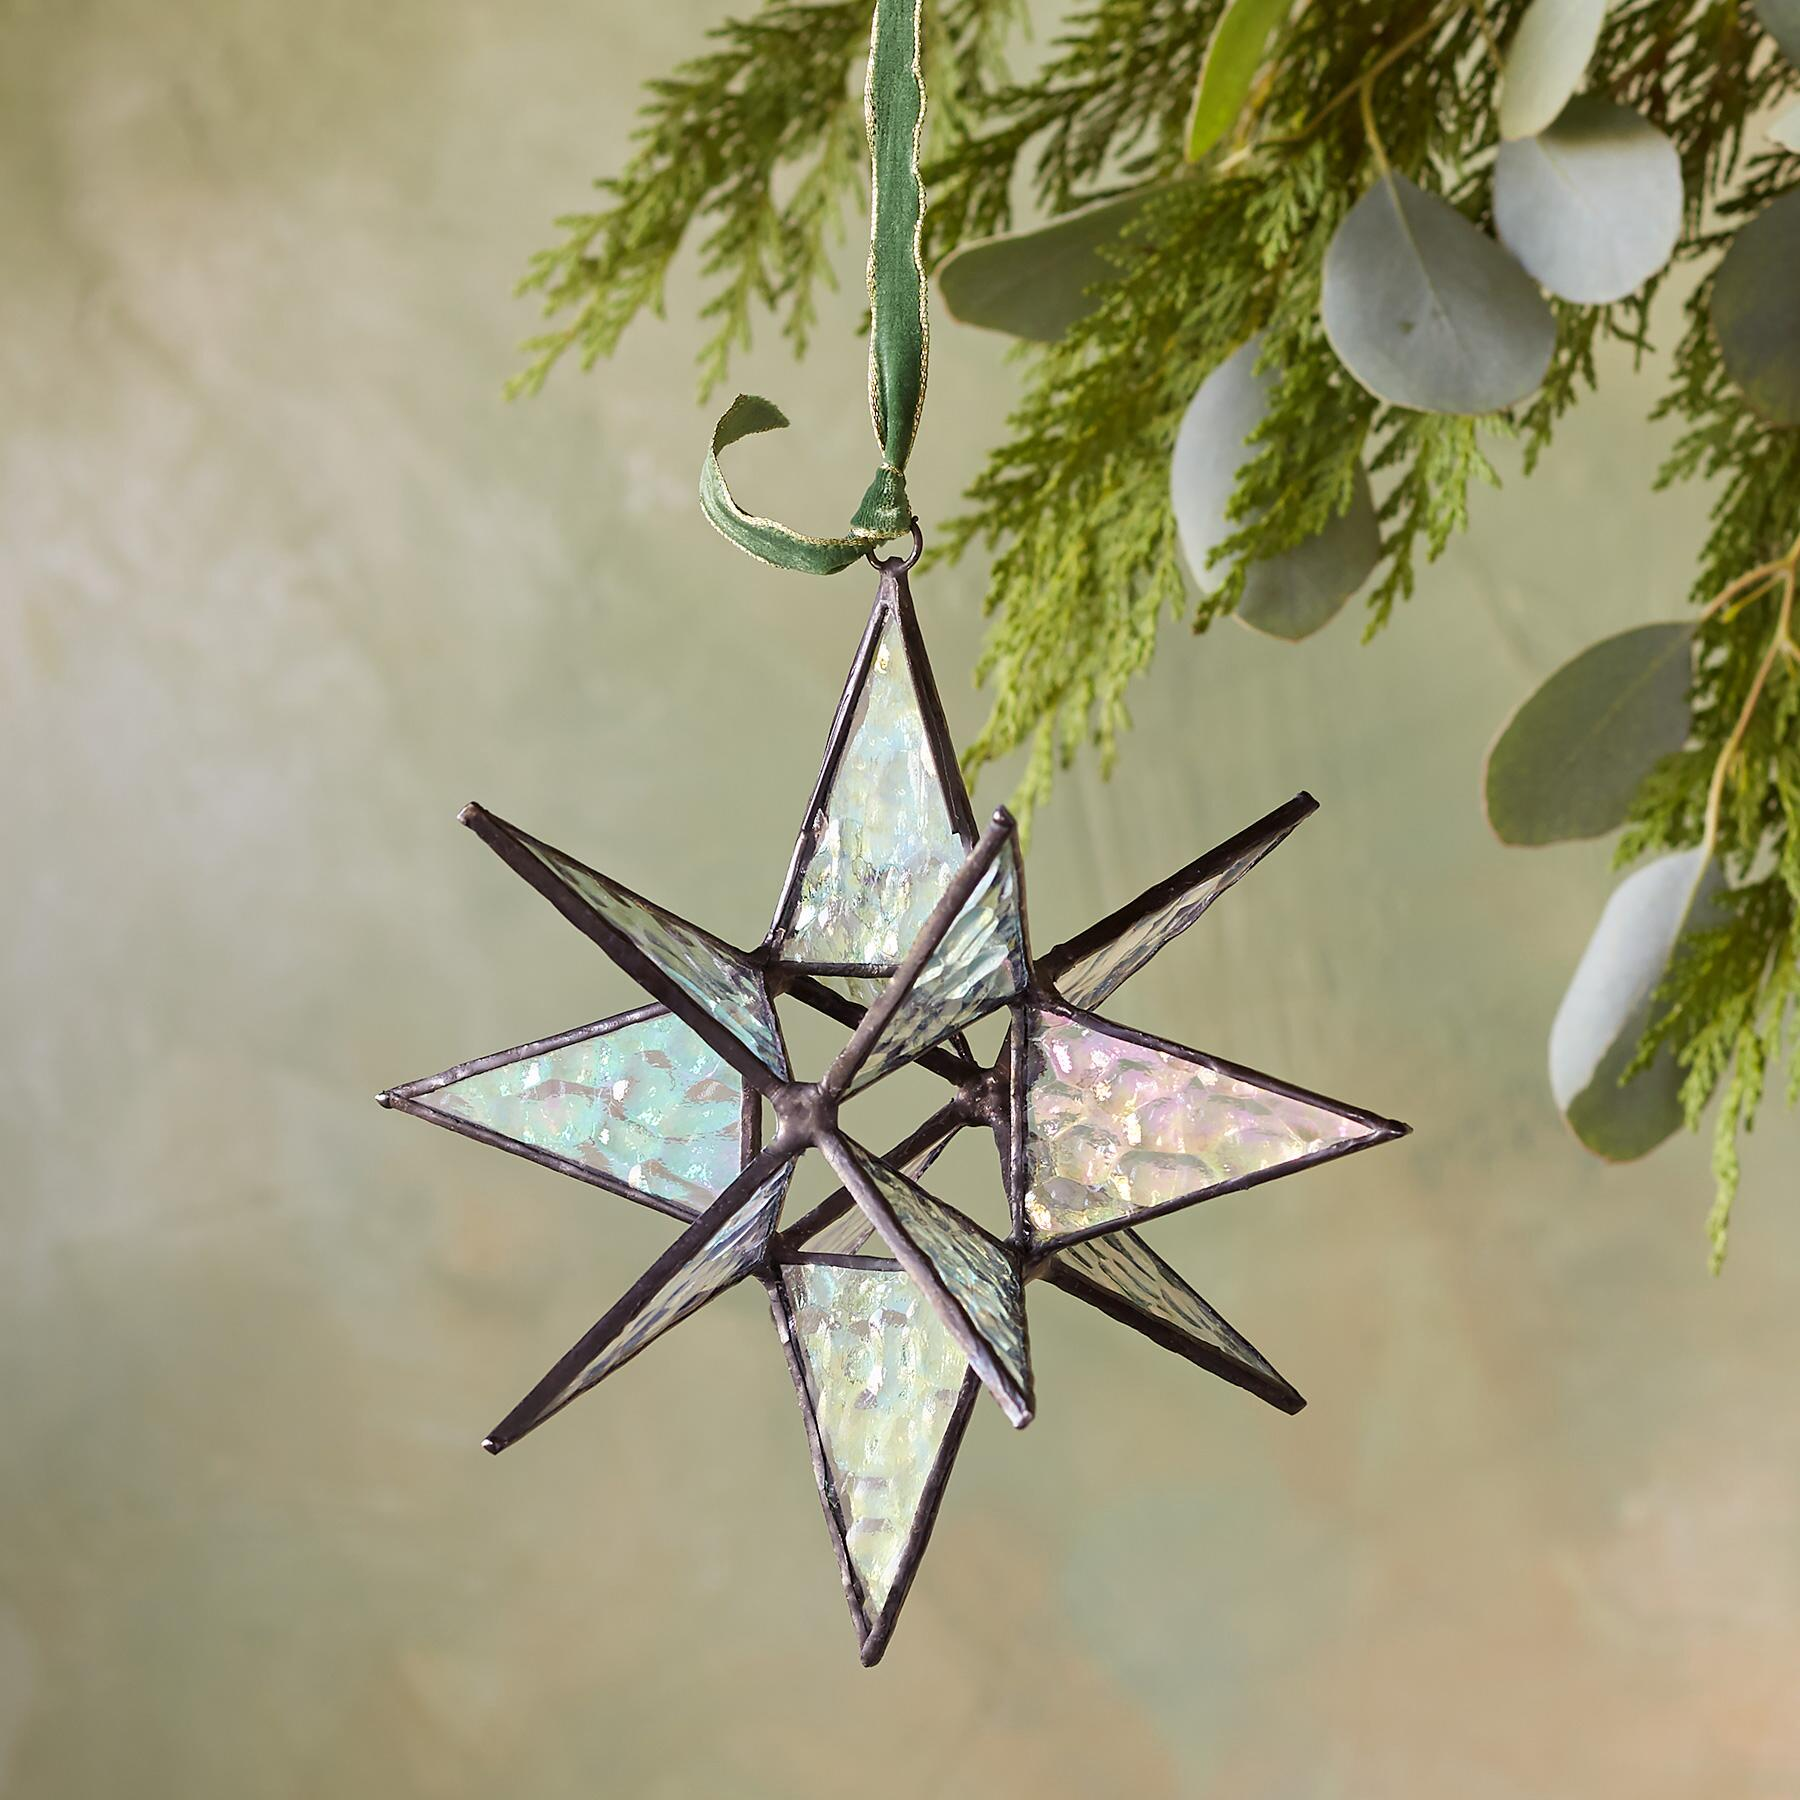 GLASS STAR ORN - LG: View 2